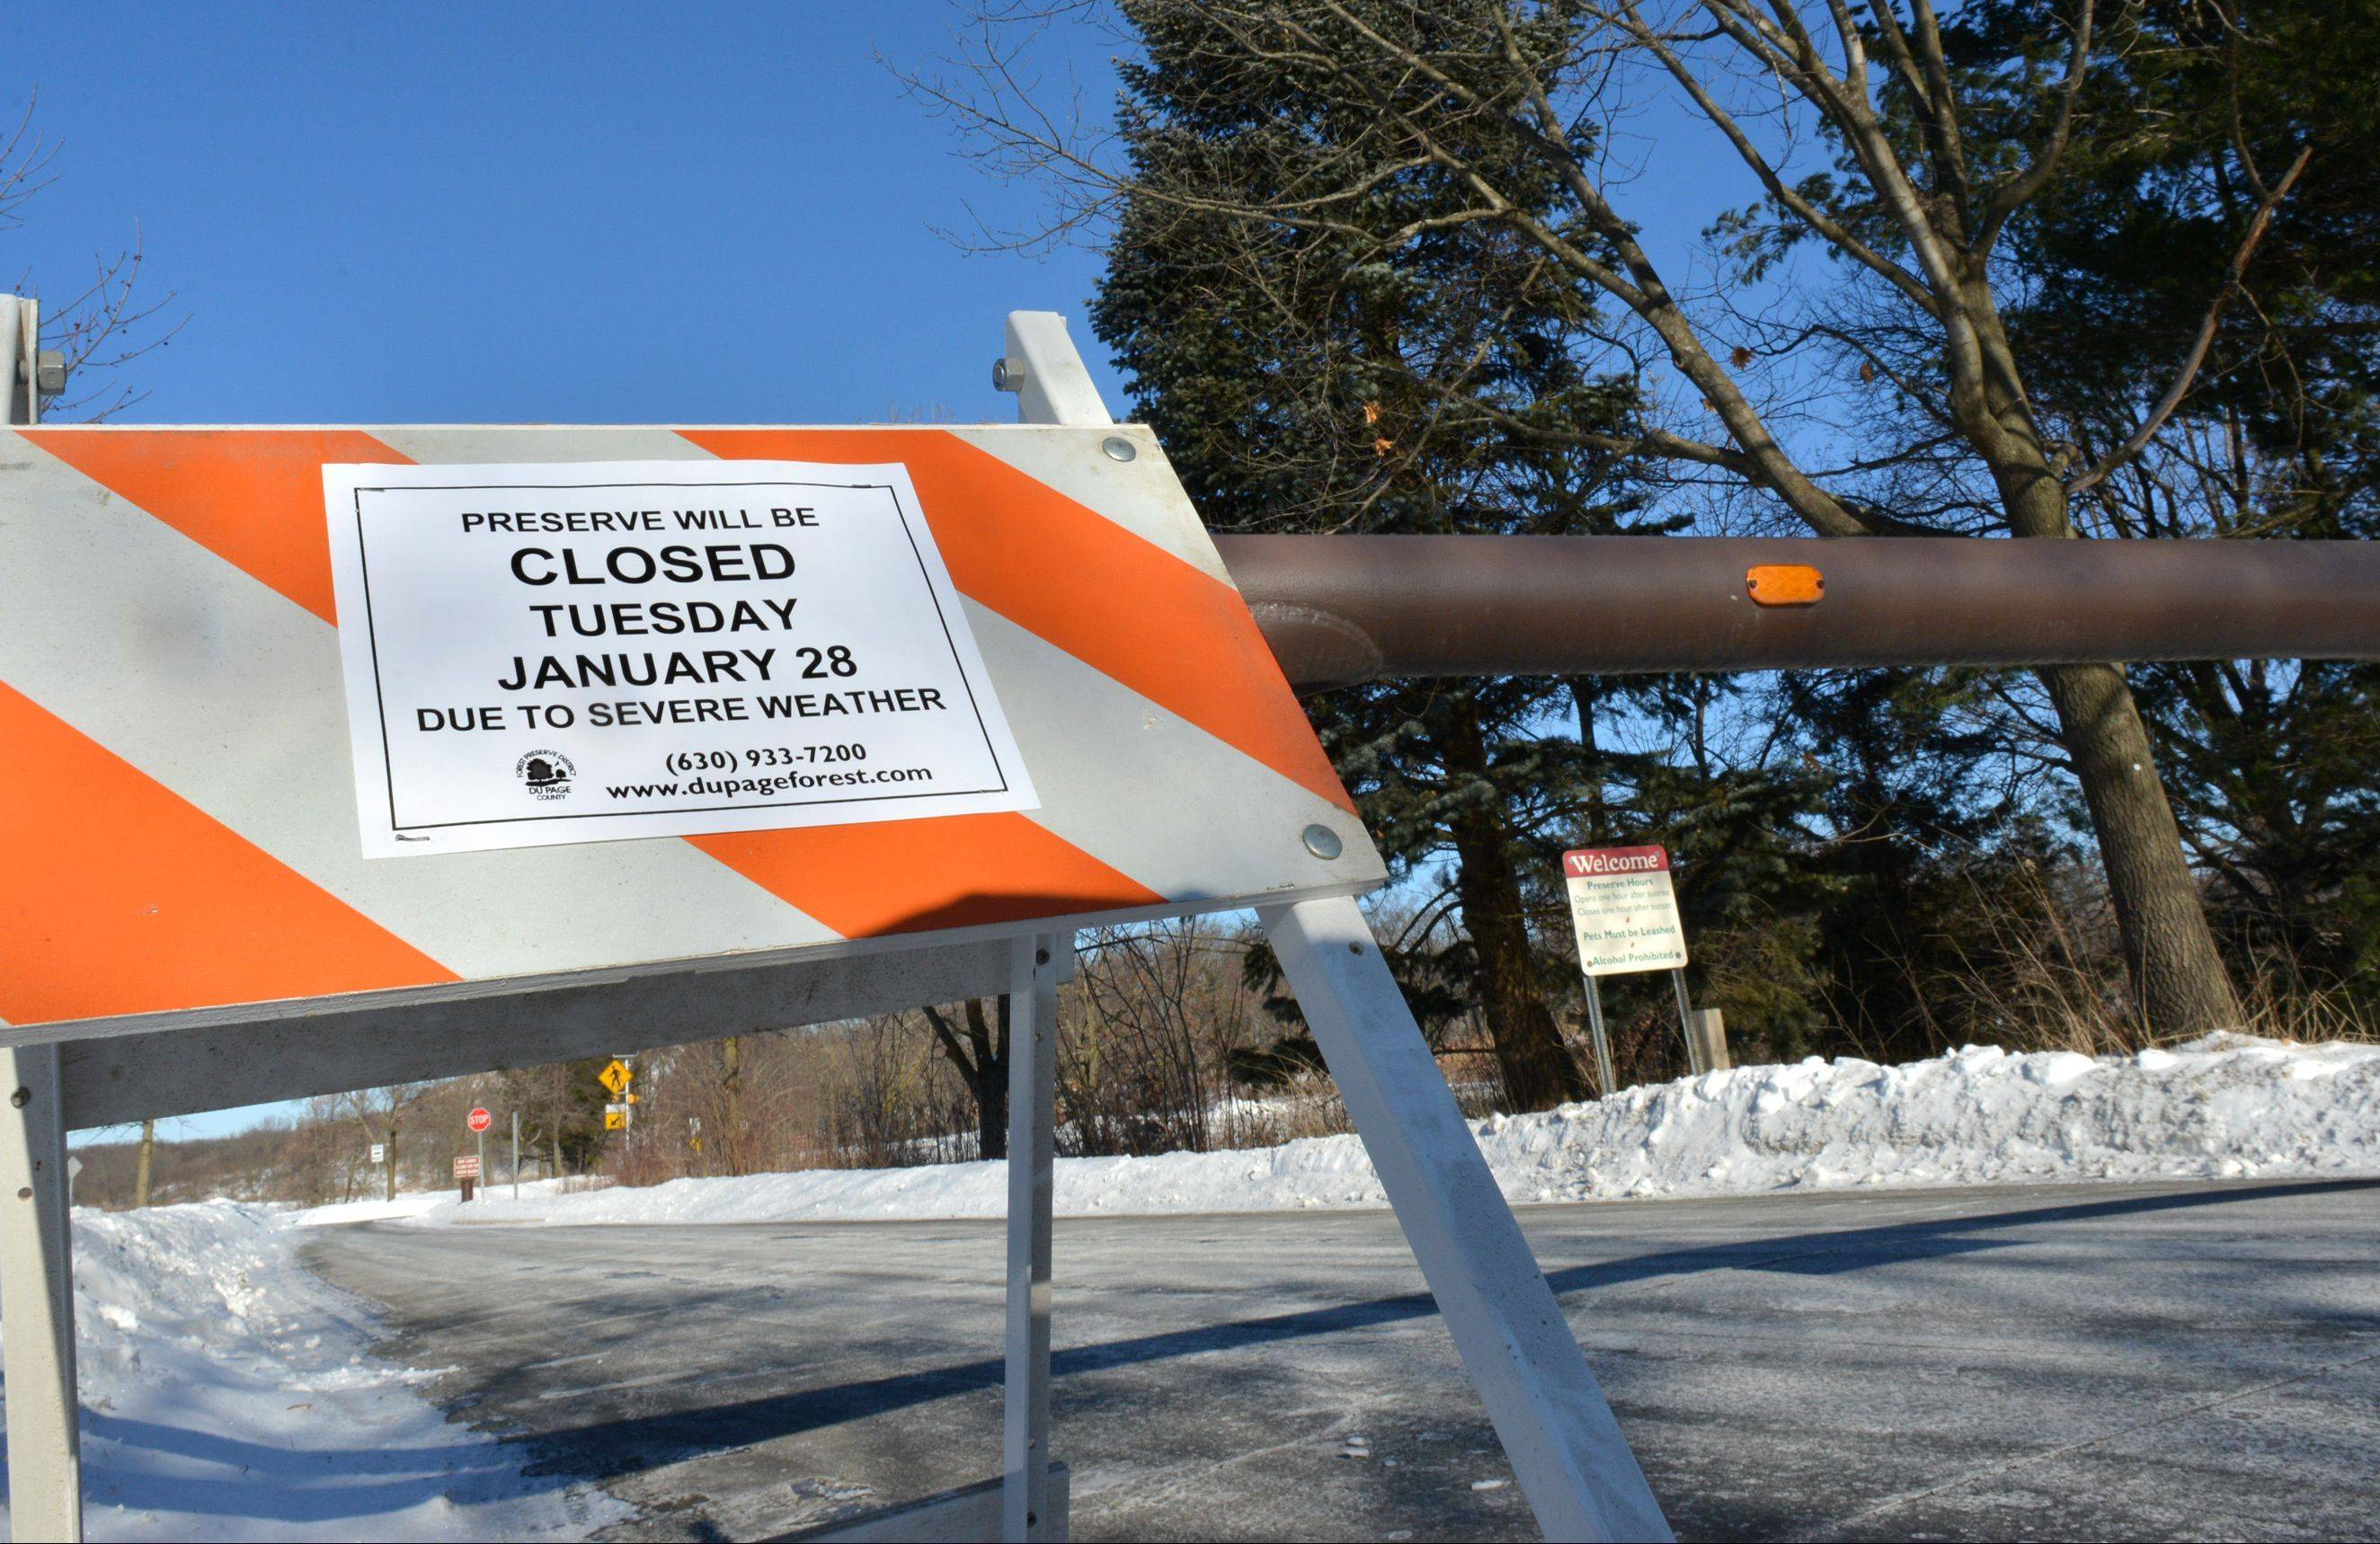 DuPage County Forest Preserves, including Blackwell near Warrenville, were closed to the public Tuesday in response to dangerously cold temperatures.